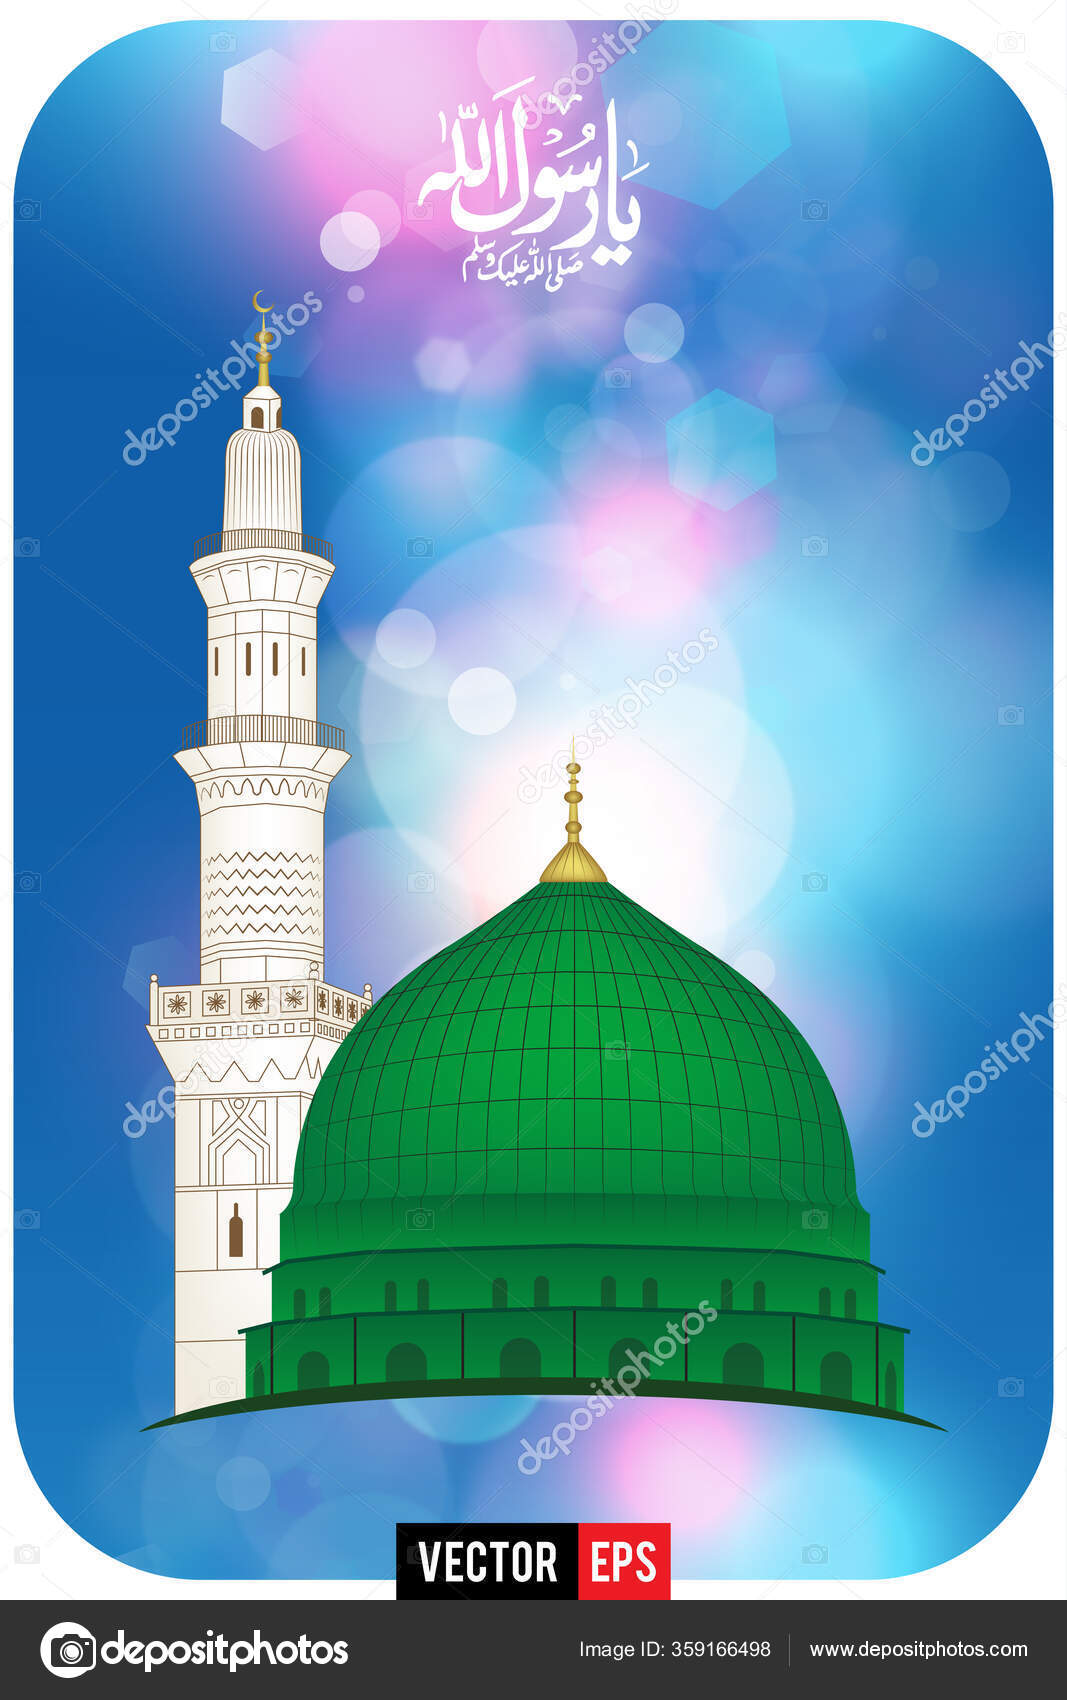 vector draw masjid nabawi madina tun nabi grey background arabic stock vector c samiishere11 359166498 https depositphotos com 359166498 stock illustration vector draw masjid nabawi madina html